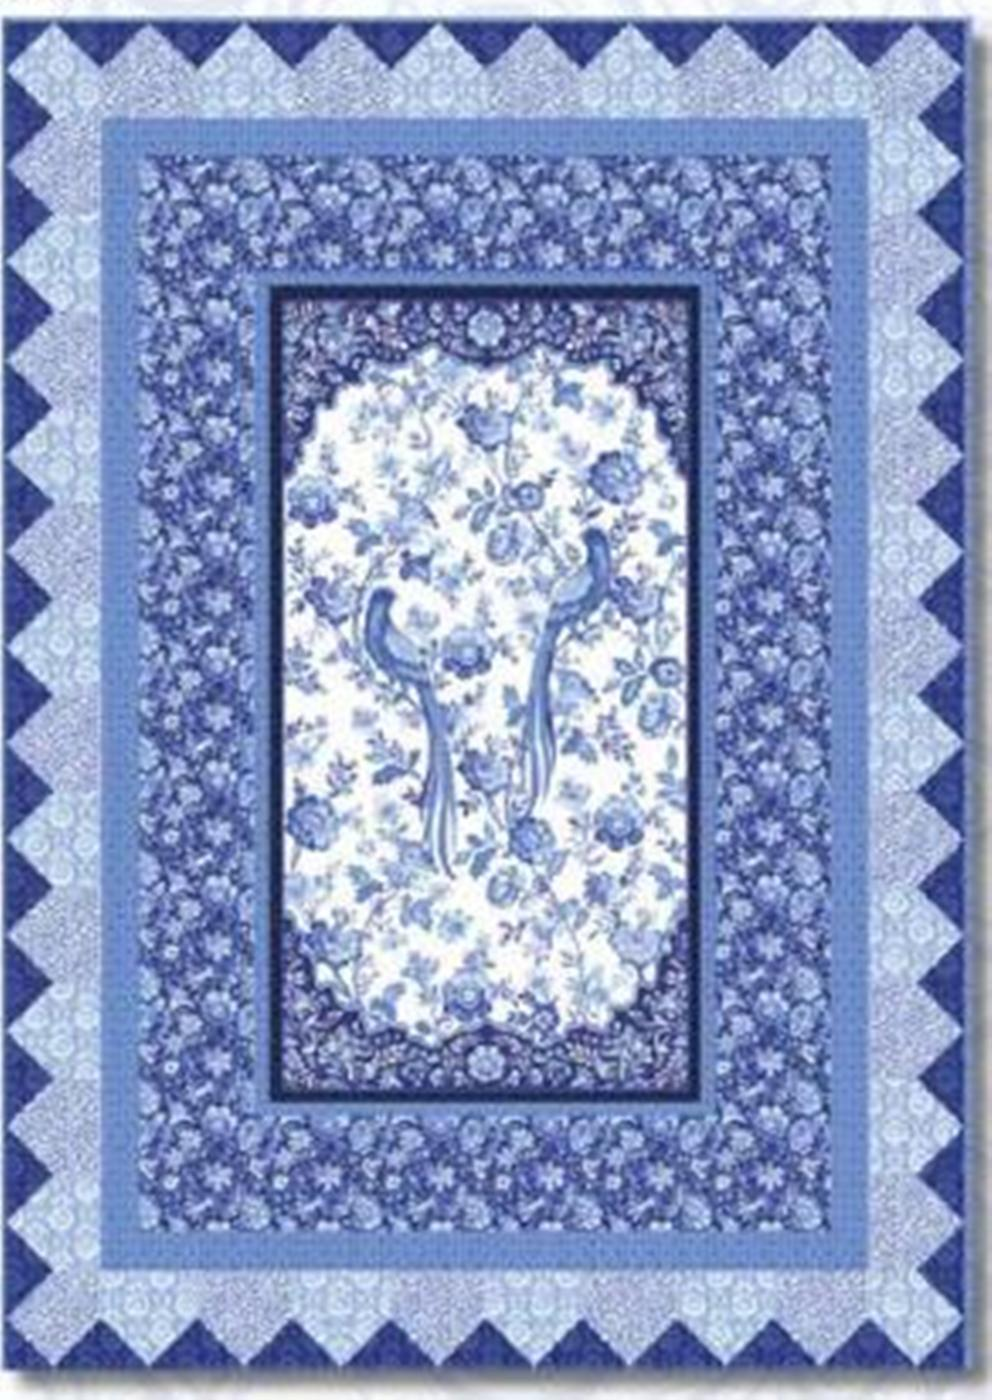 This kit features a center panel with long tailed birds and blue flowers.